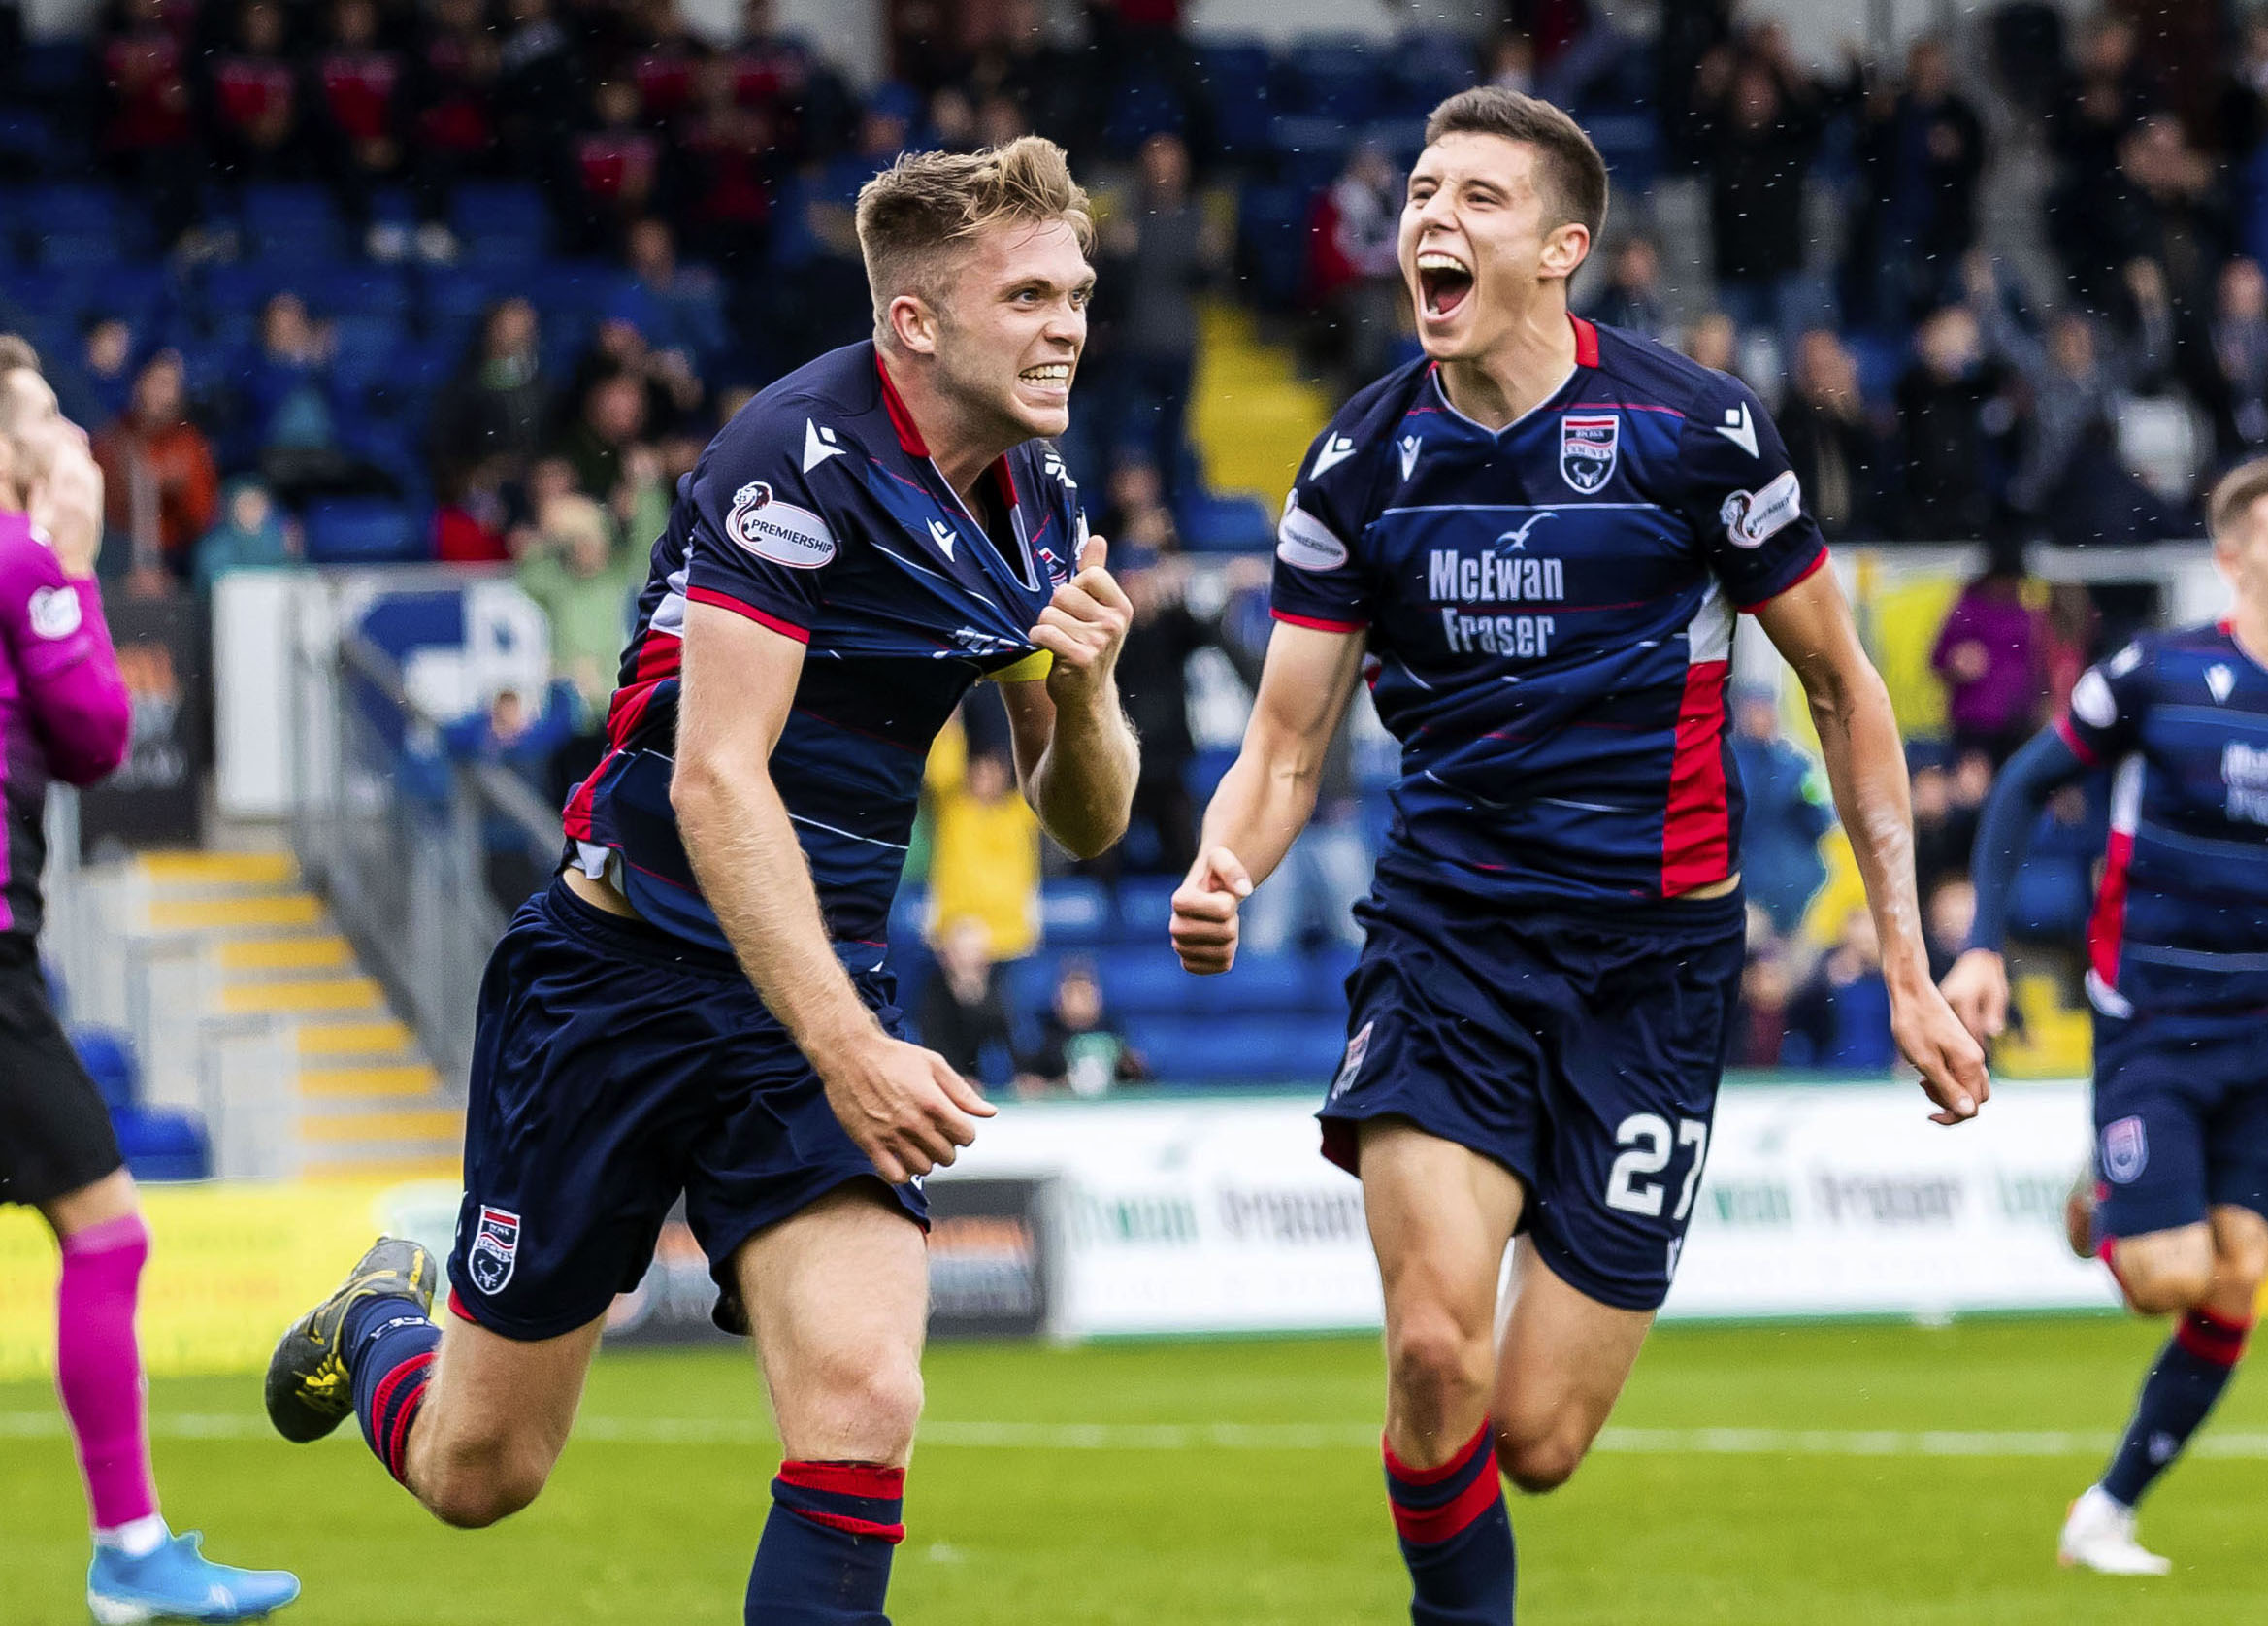 Marcus Fraser insists Ross County can extend their unbeaten run when they play Celtic